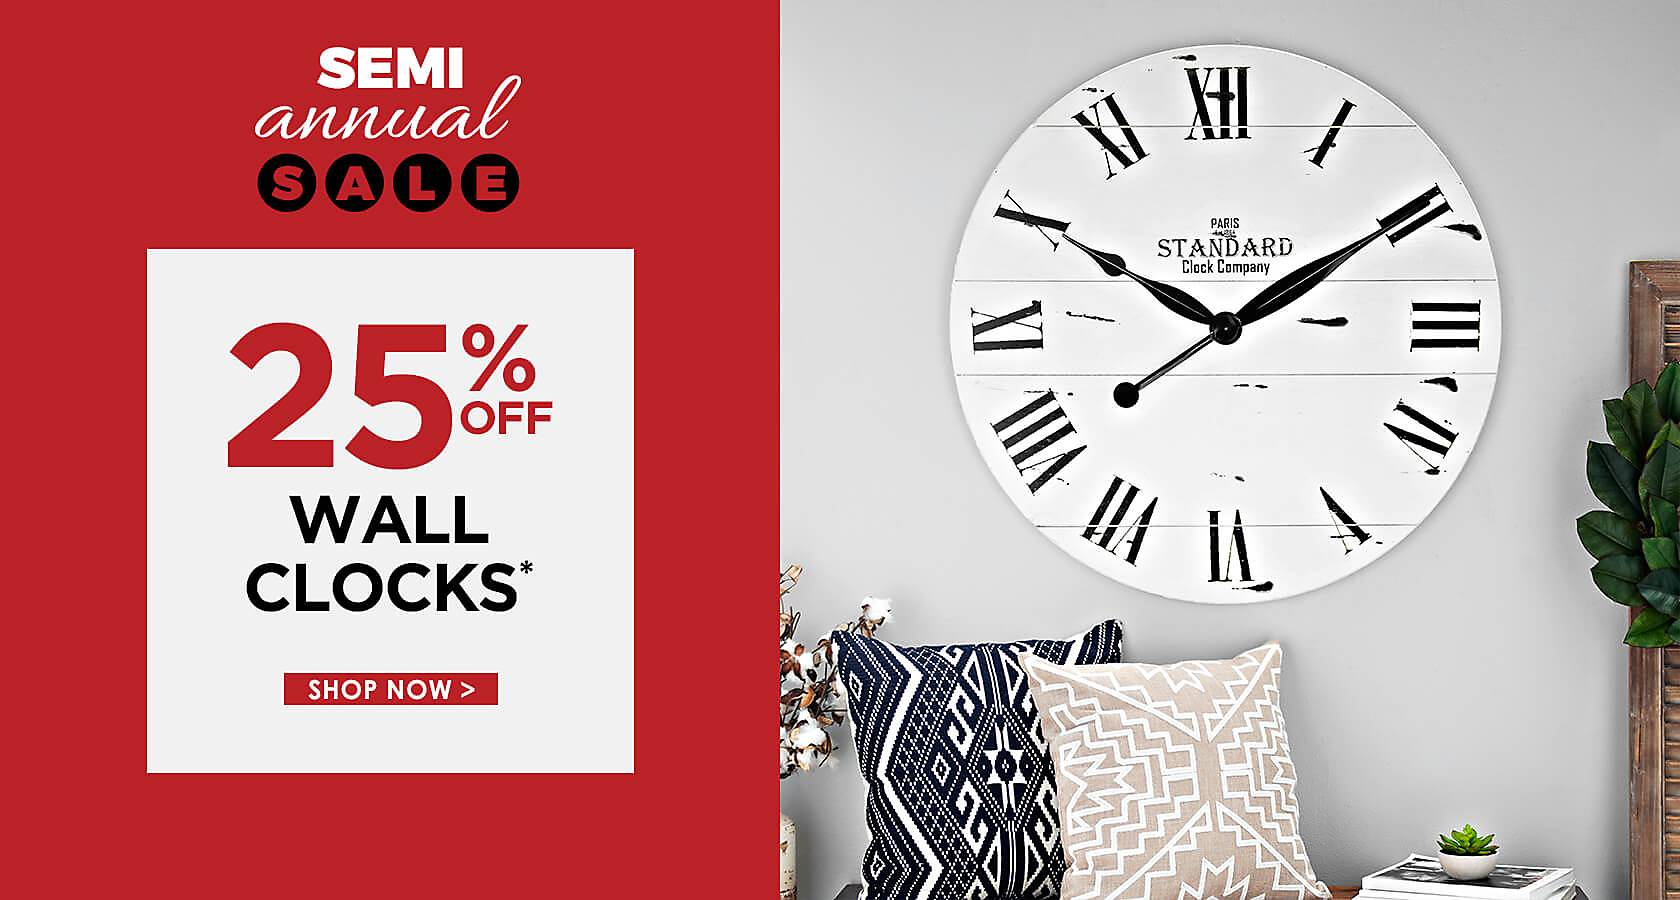 25% Off Wall Clocks - Some exclusions apply online - Shop Now